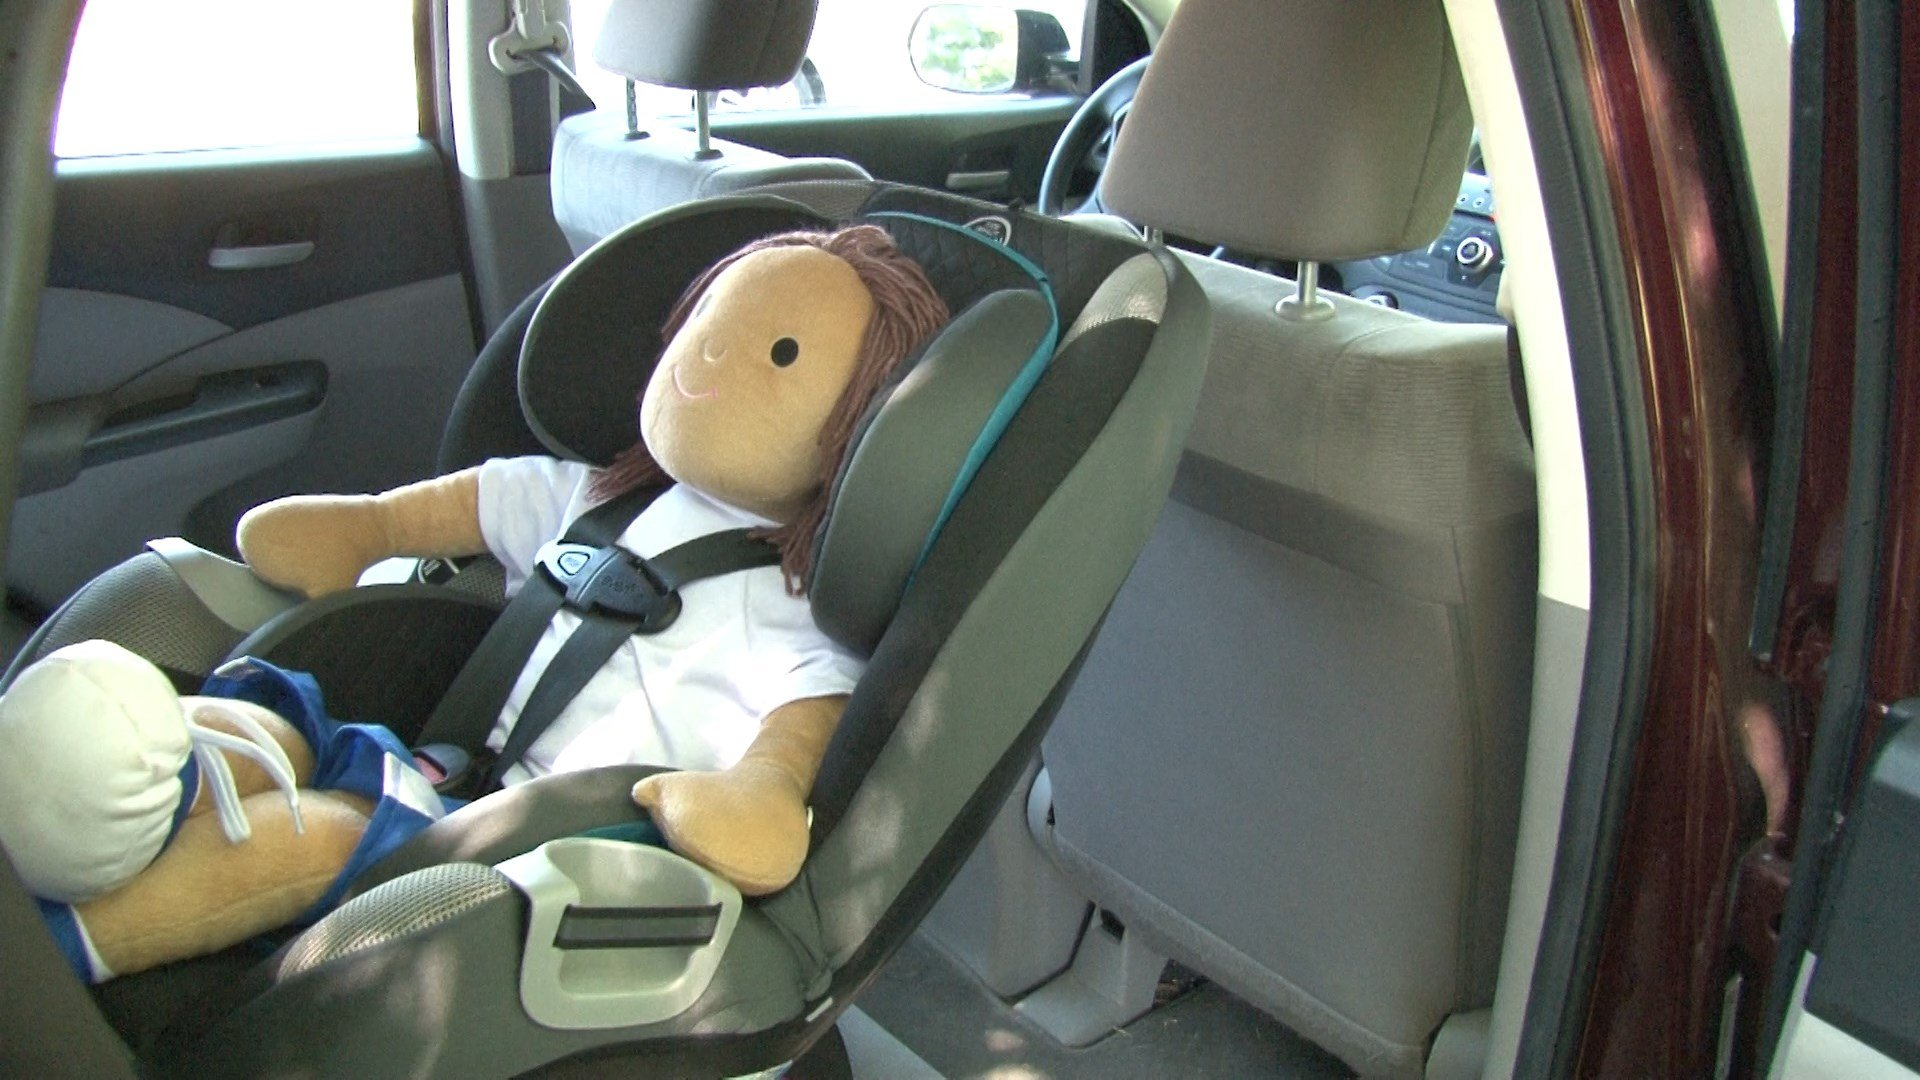 new law requires reversed car seats for two and under erie news now wicu and wsee in erie pa. Black Bedroom Furniture Sets. Home Design Ideas